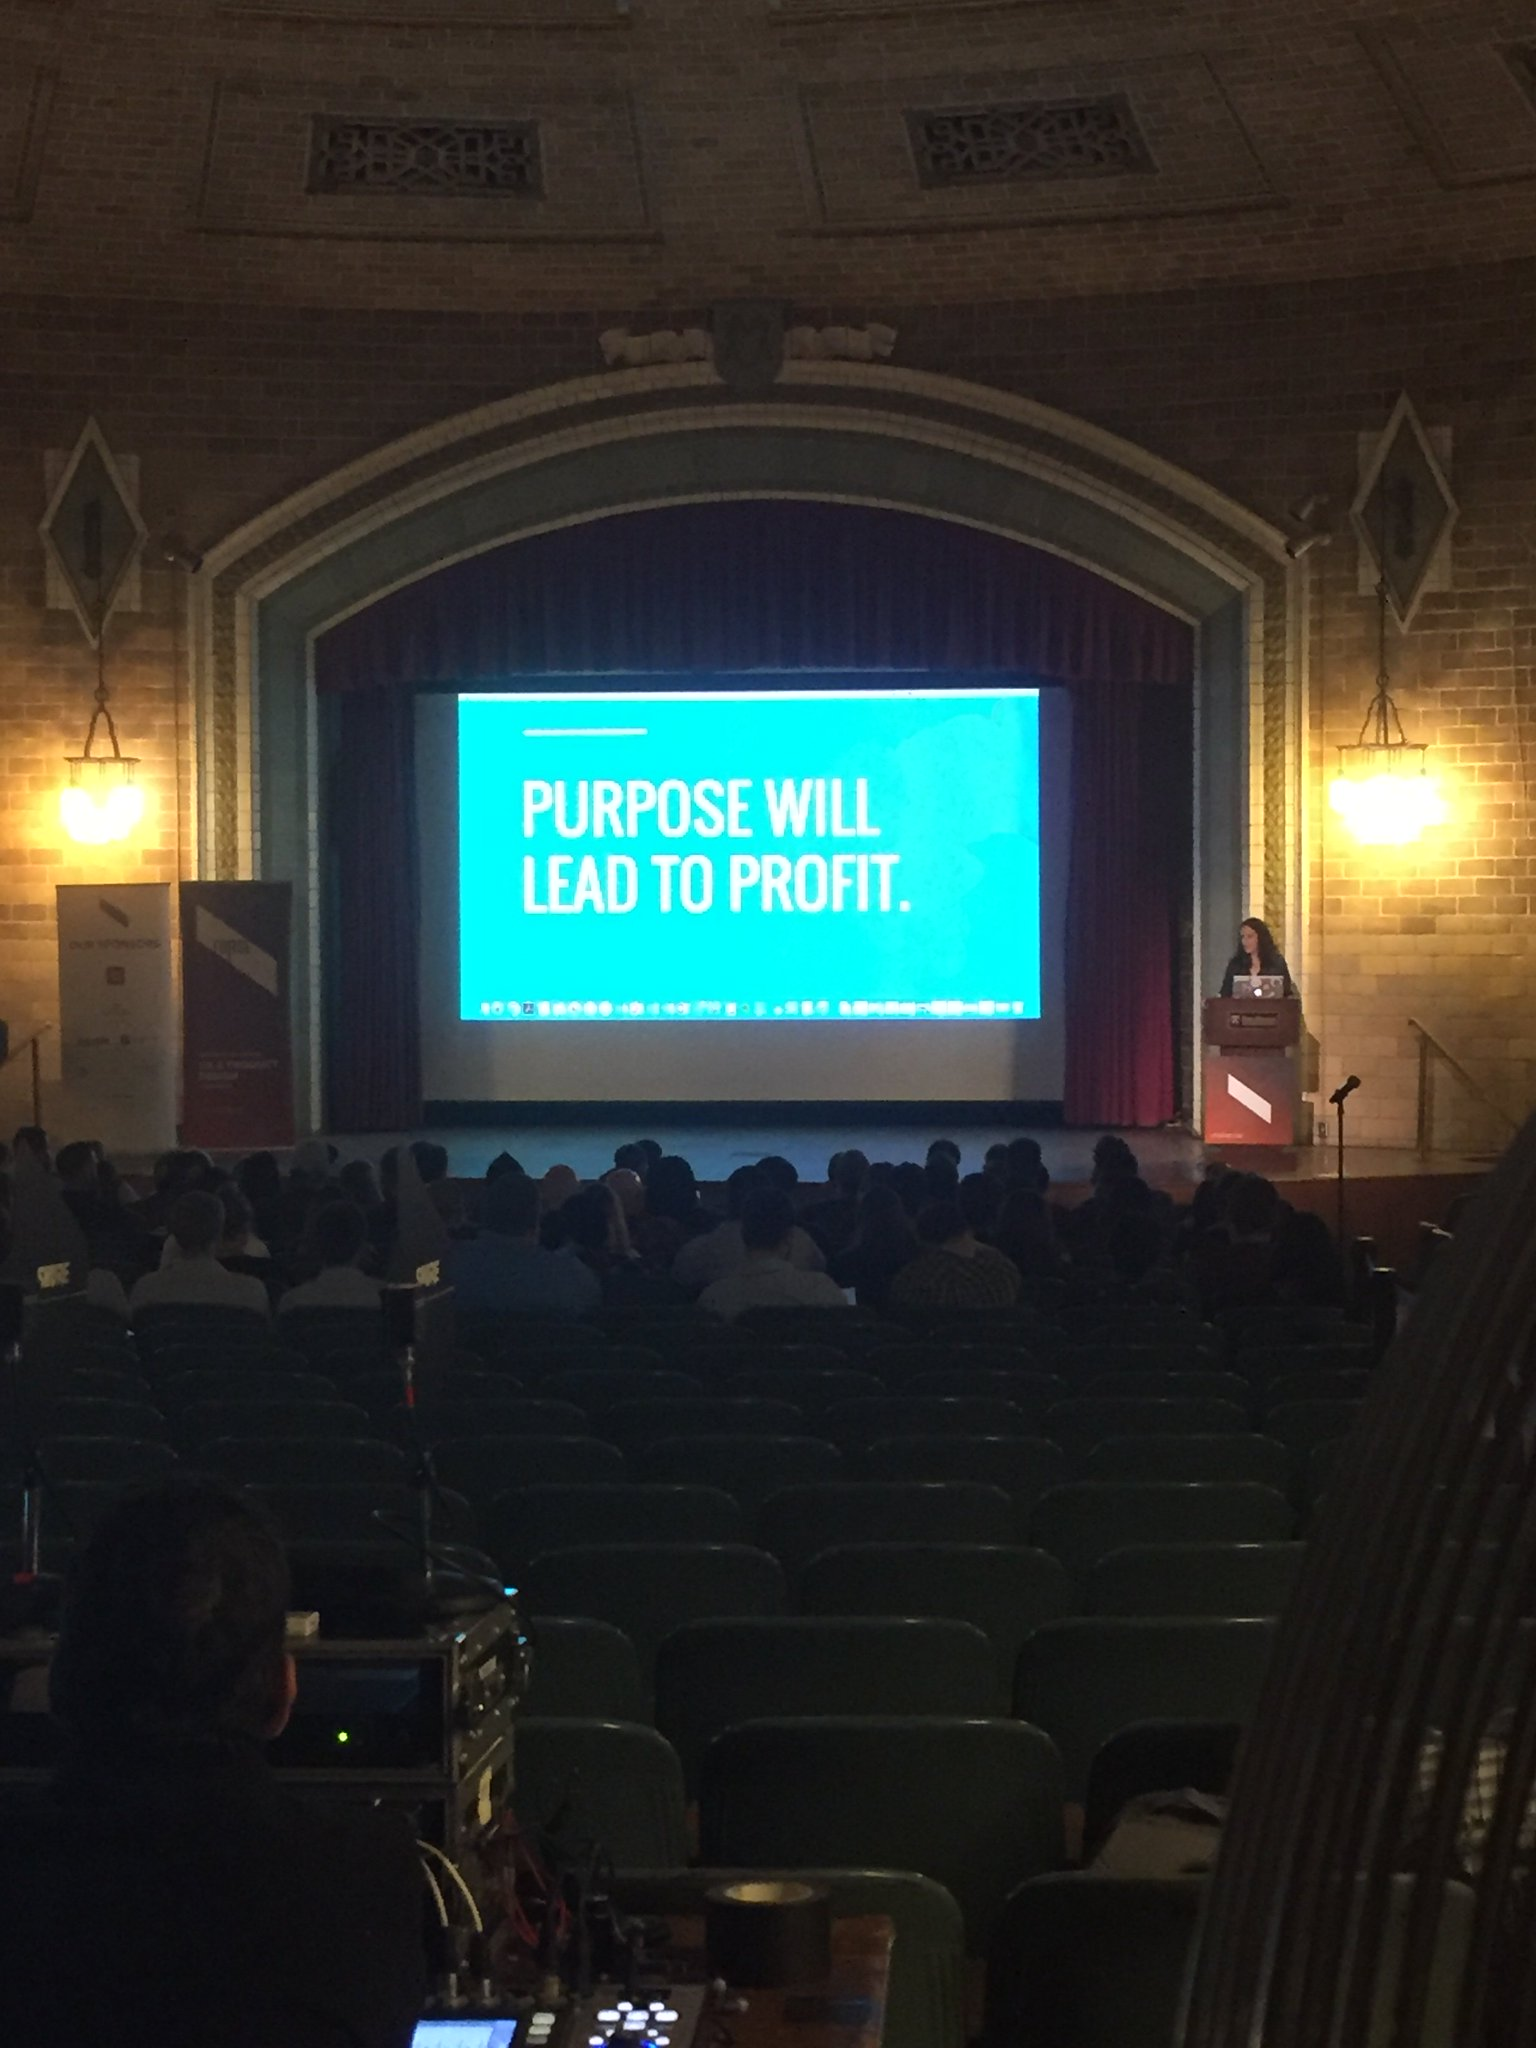 Purpose will lead to profit. #forgeconf  keynote from @AmyCueva https://t.co/p1yabWGLBU